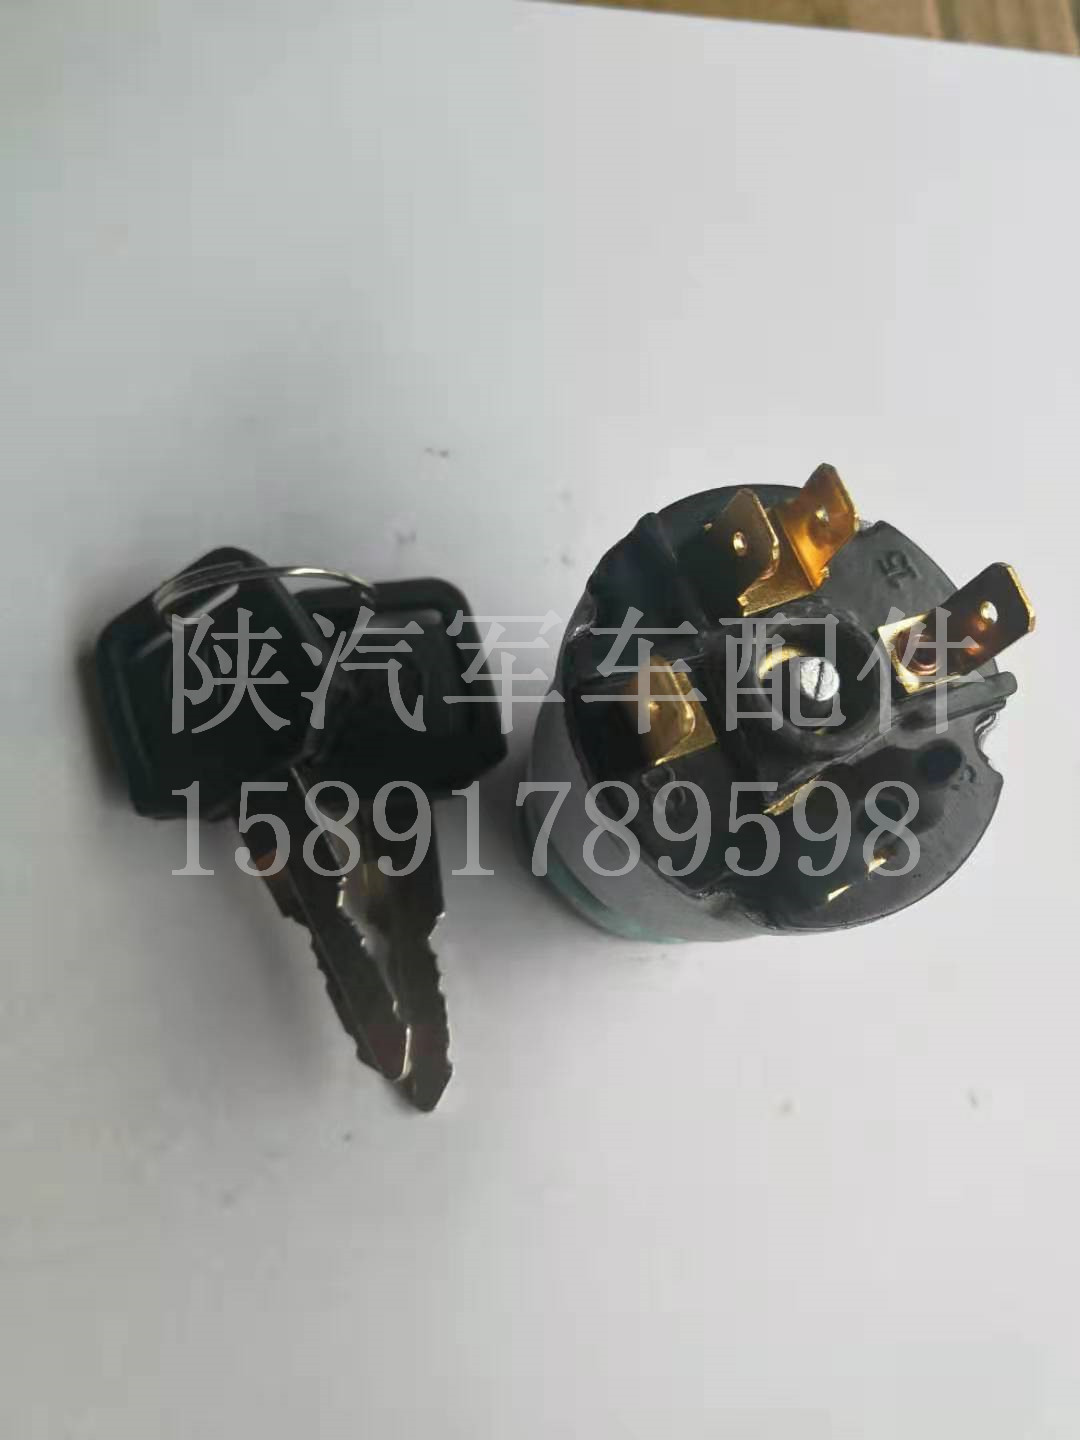 Shaanxi Automobile Military Vehicle Accessories Shaanxi Automobile Yan An 250 Sx2190 Shaanxi Automobile Sx2190 Ignition Switch Ignition Key